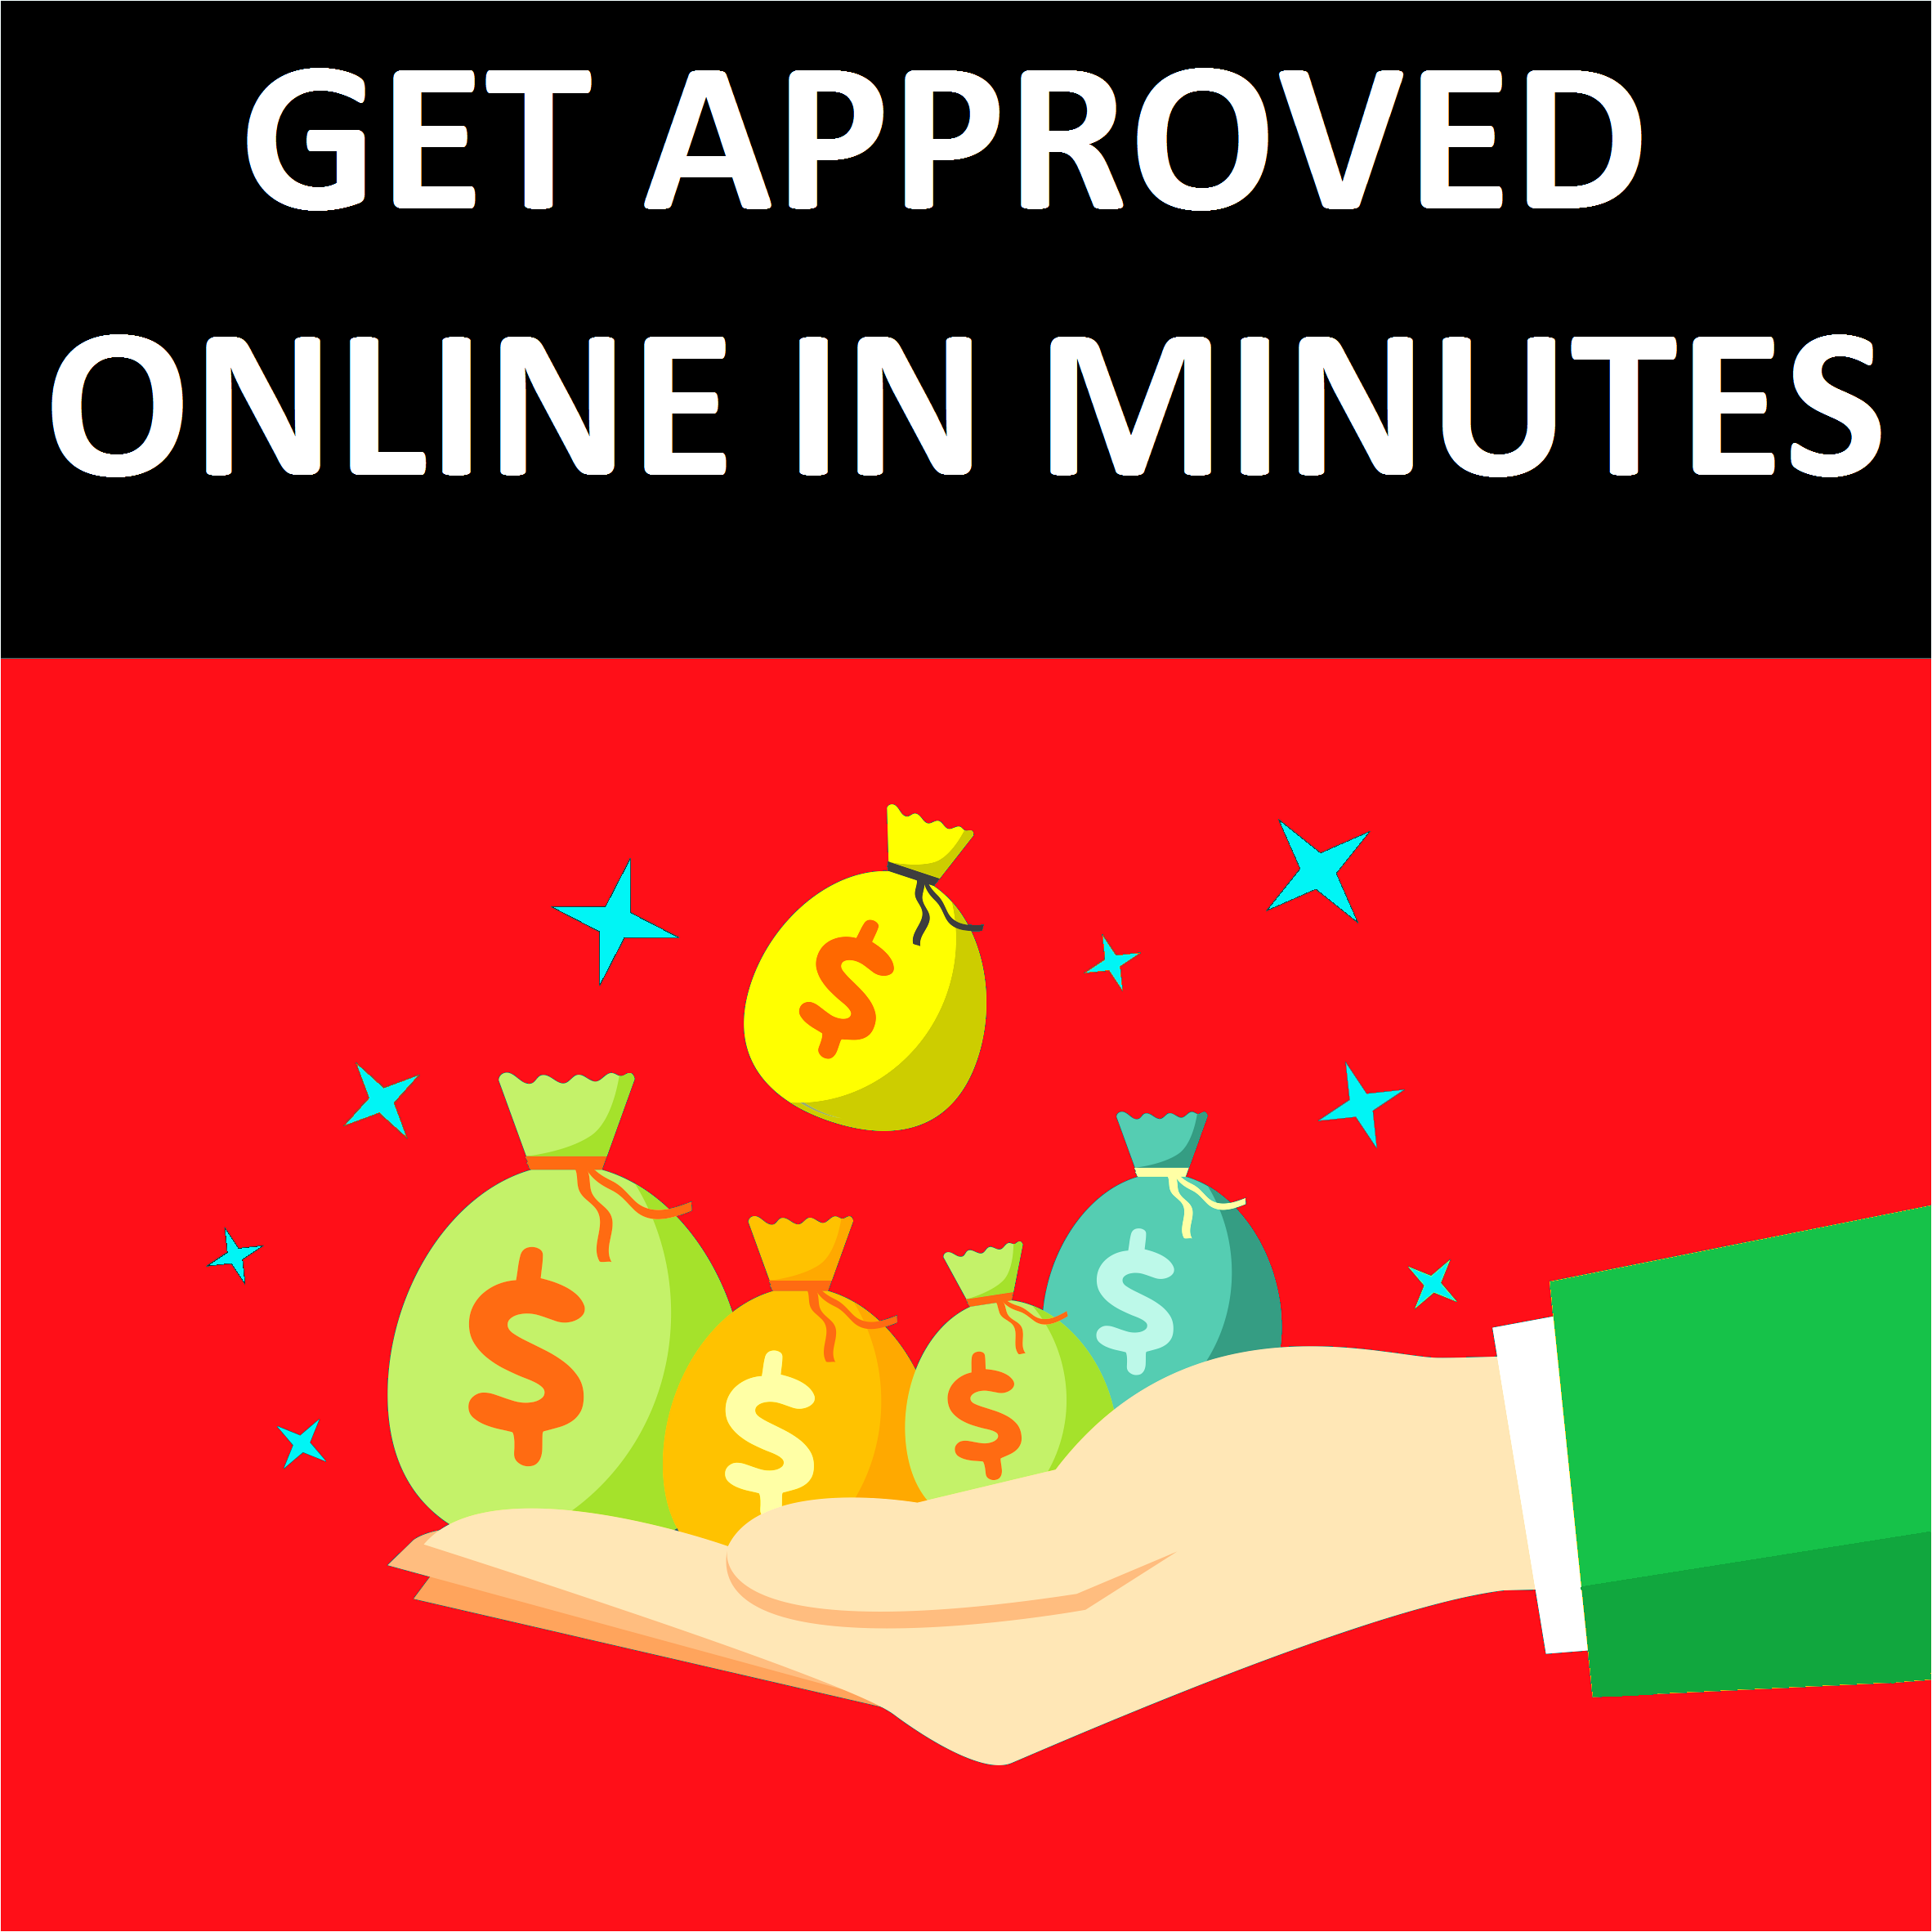 Get Approved Online In Minutes